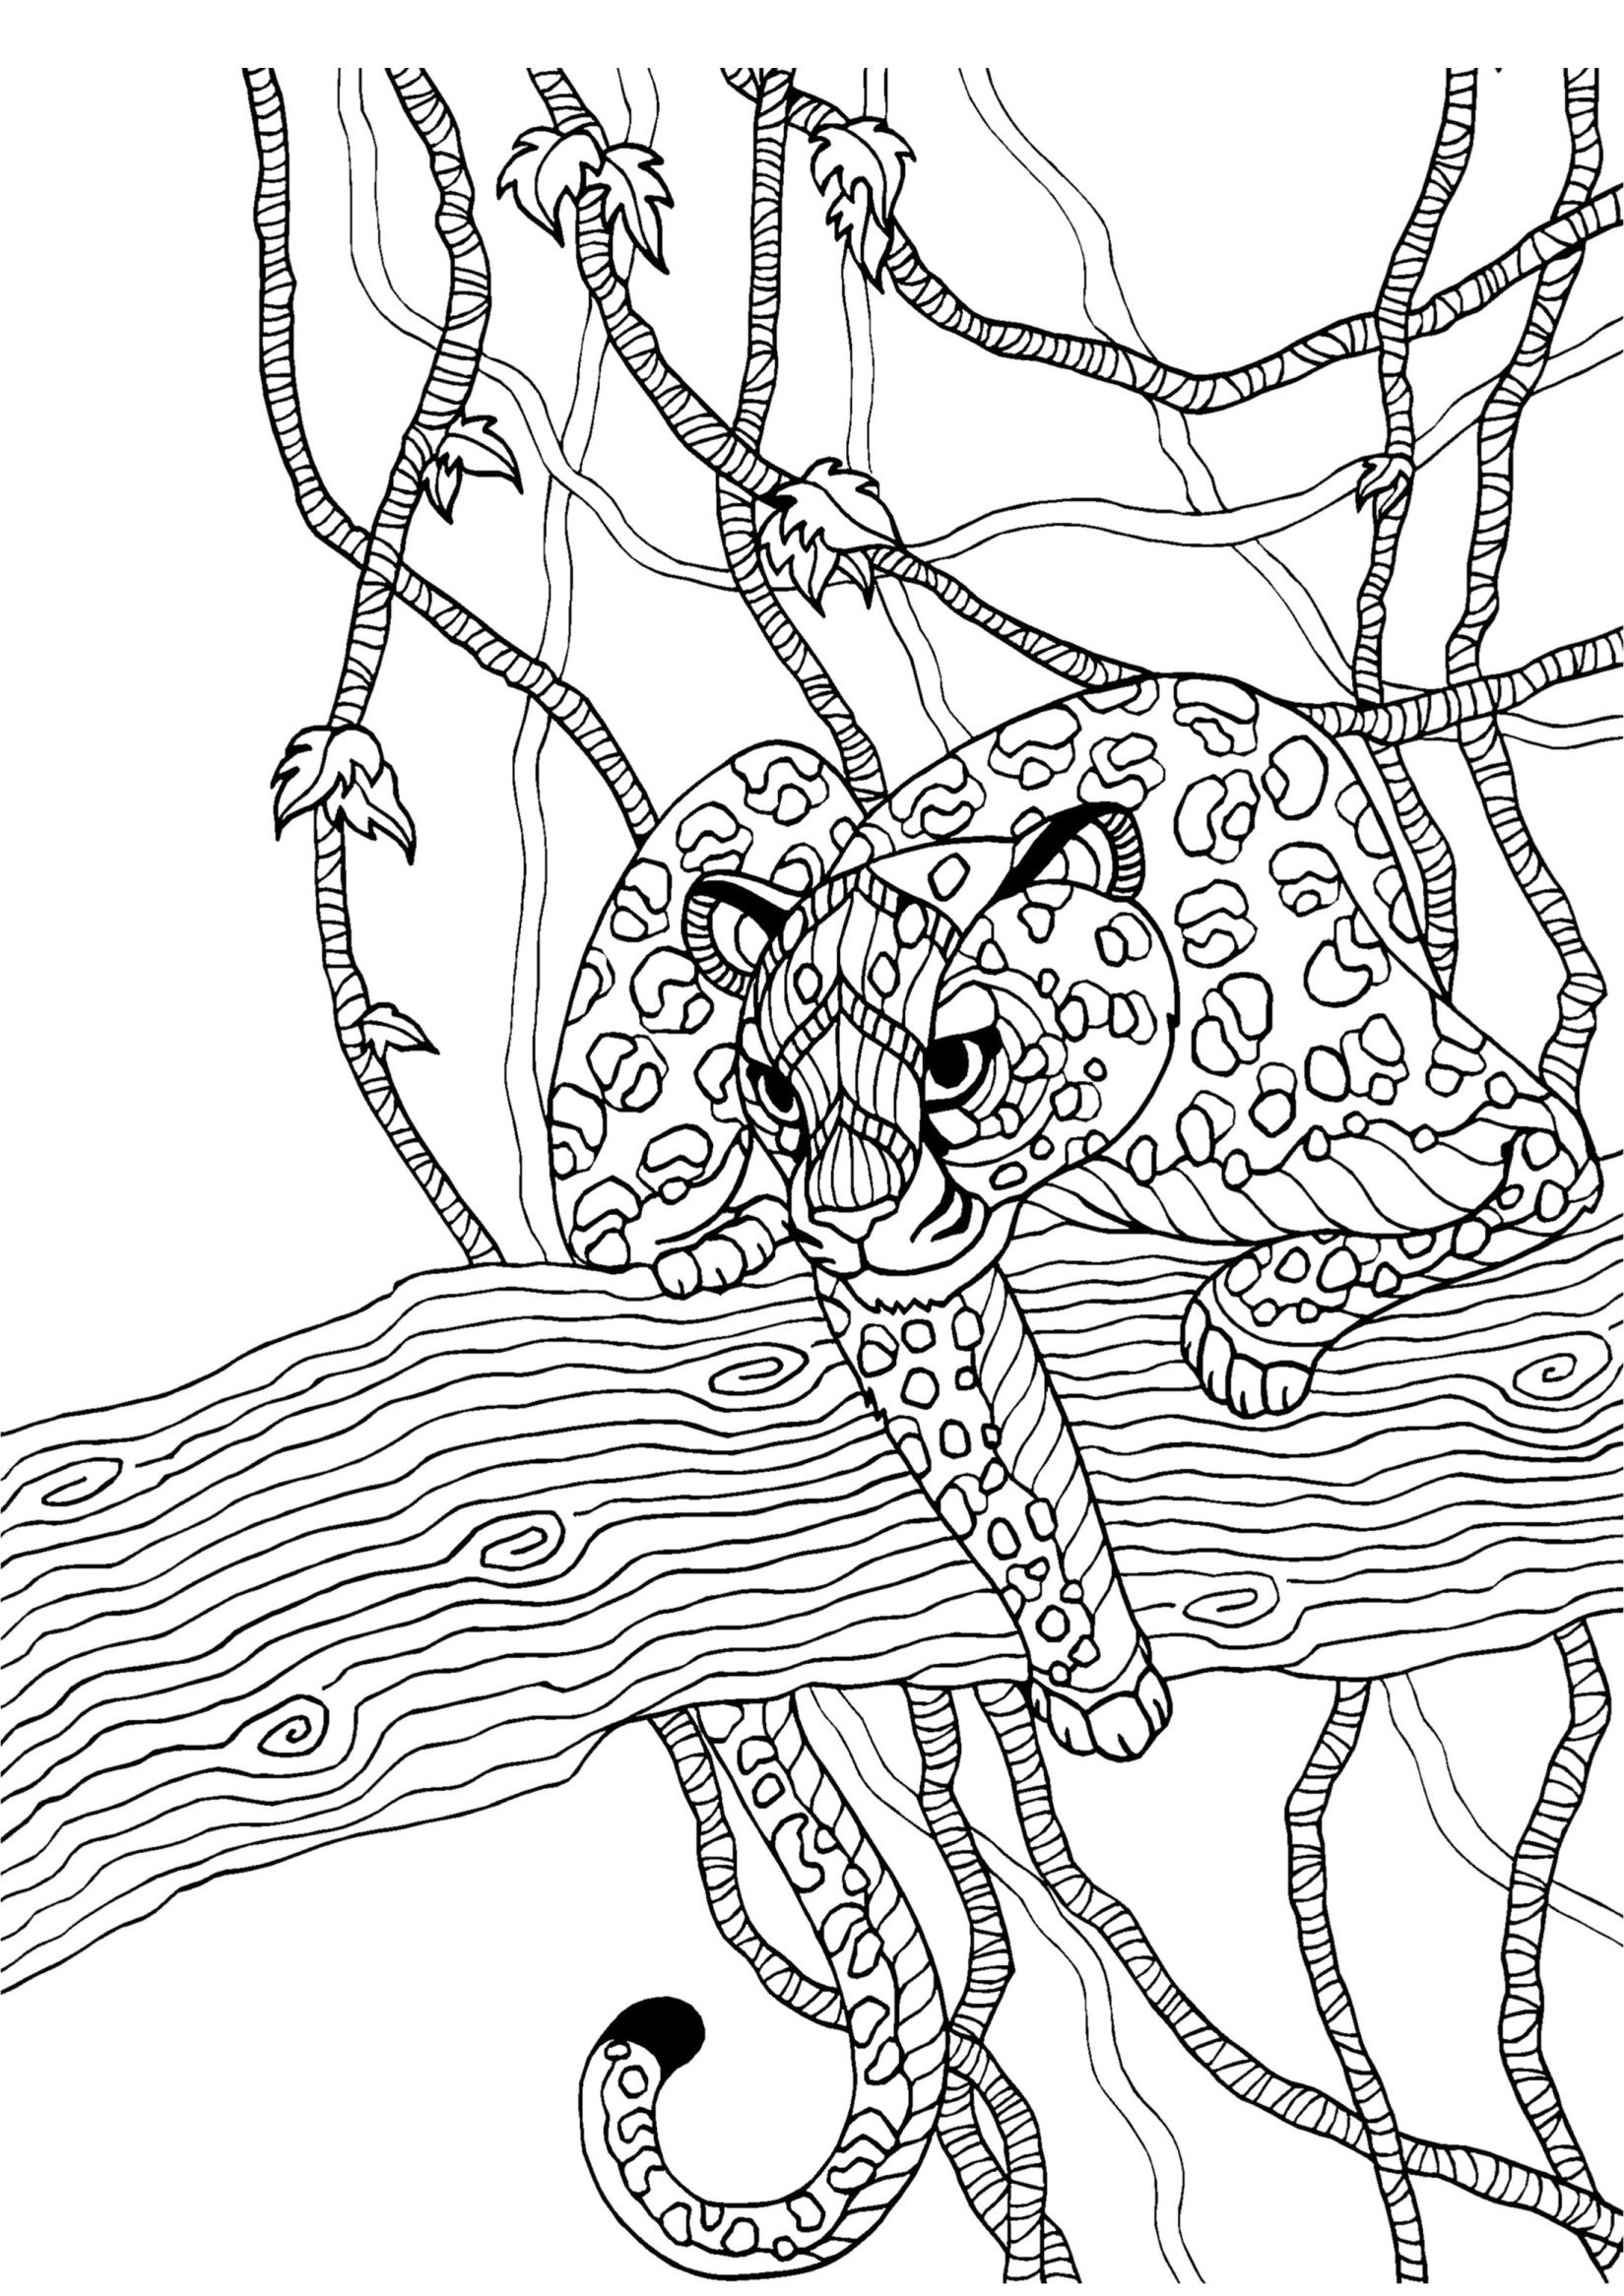 Cheetah Adult Colouring Page Colouring In Sheets